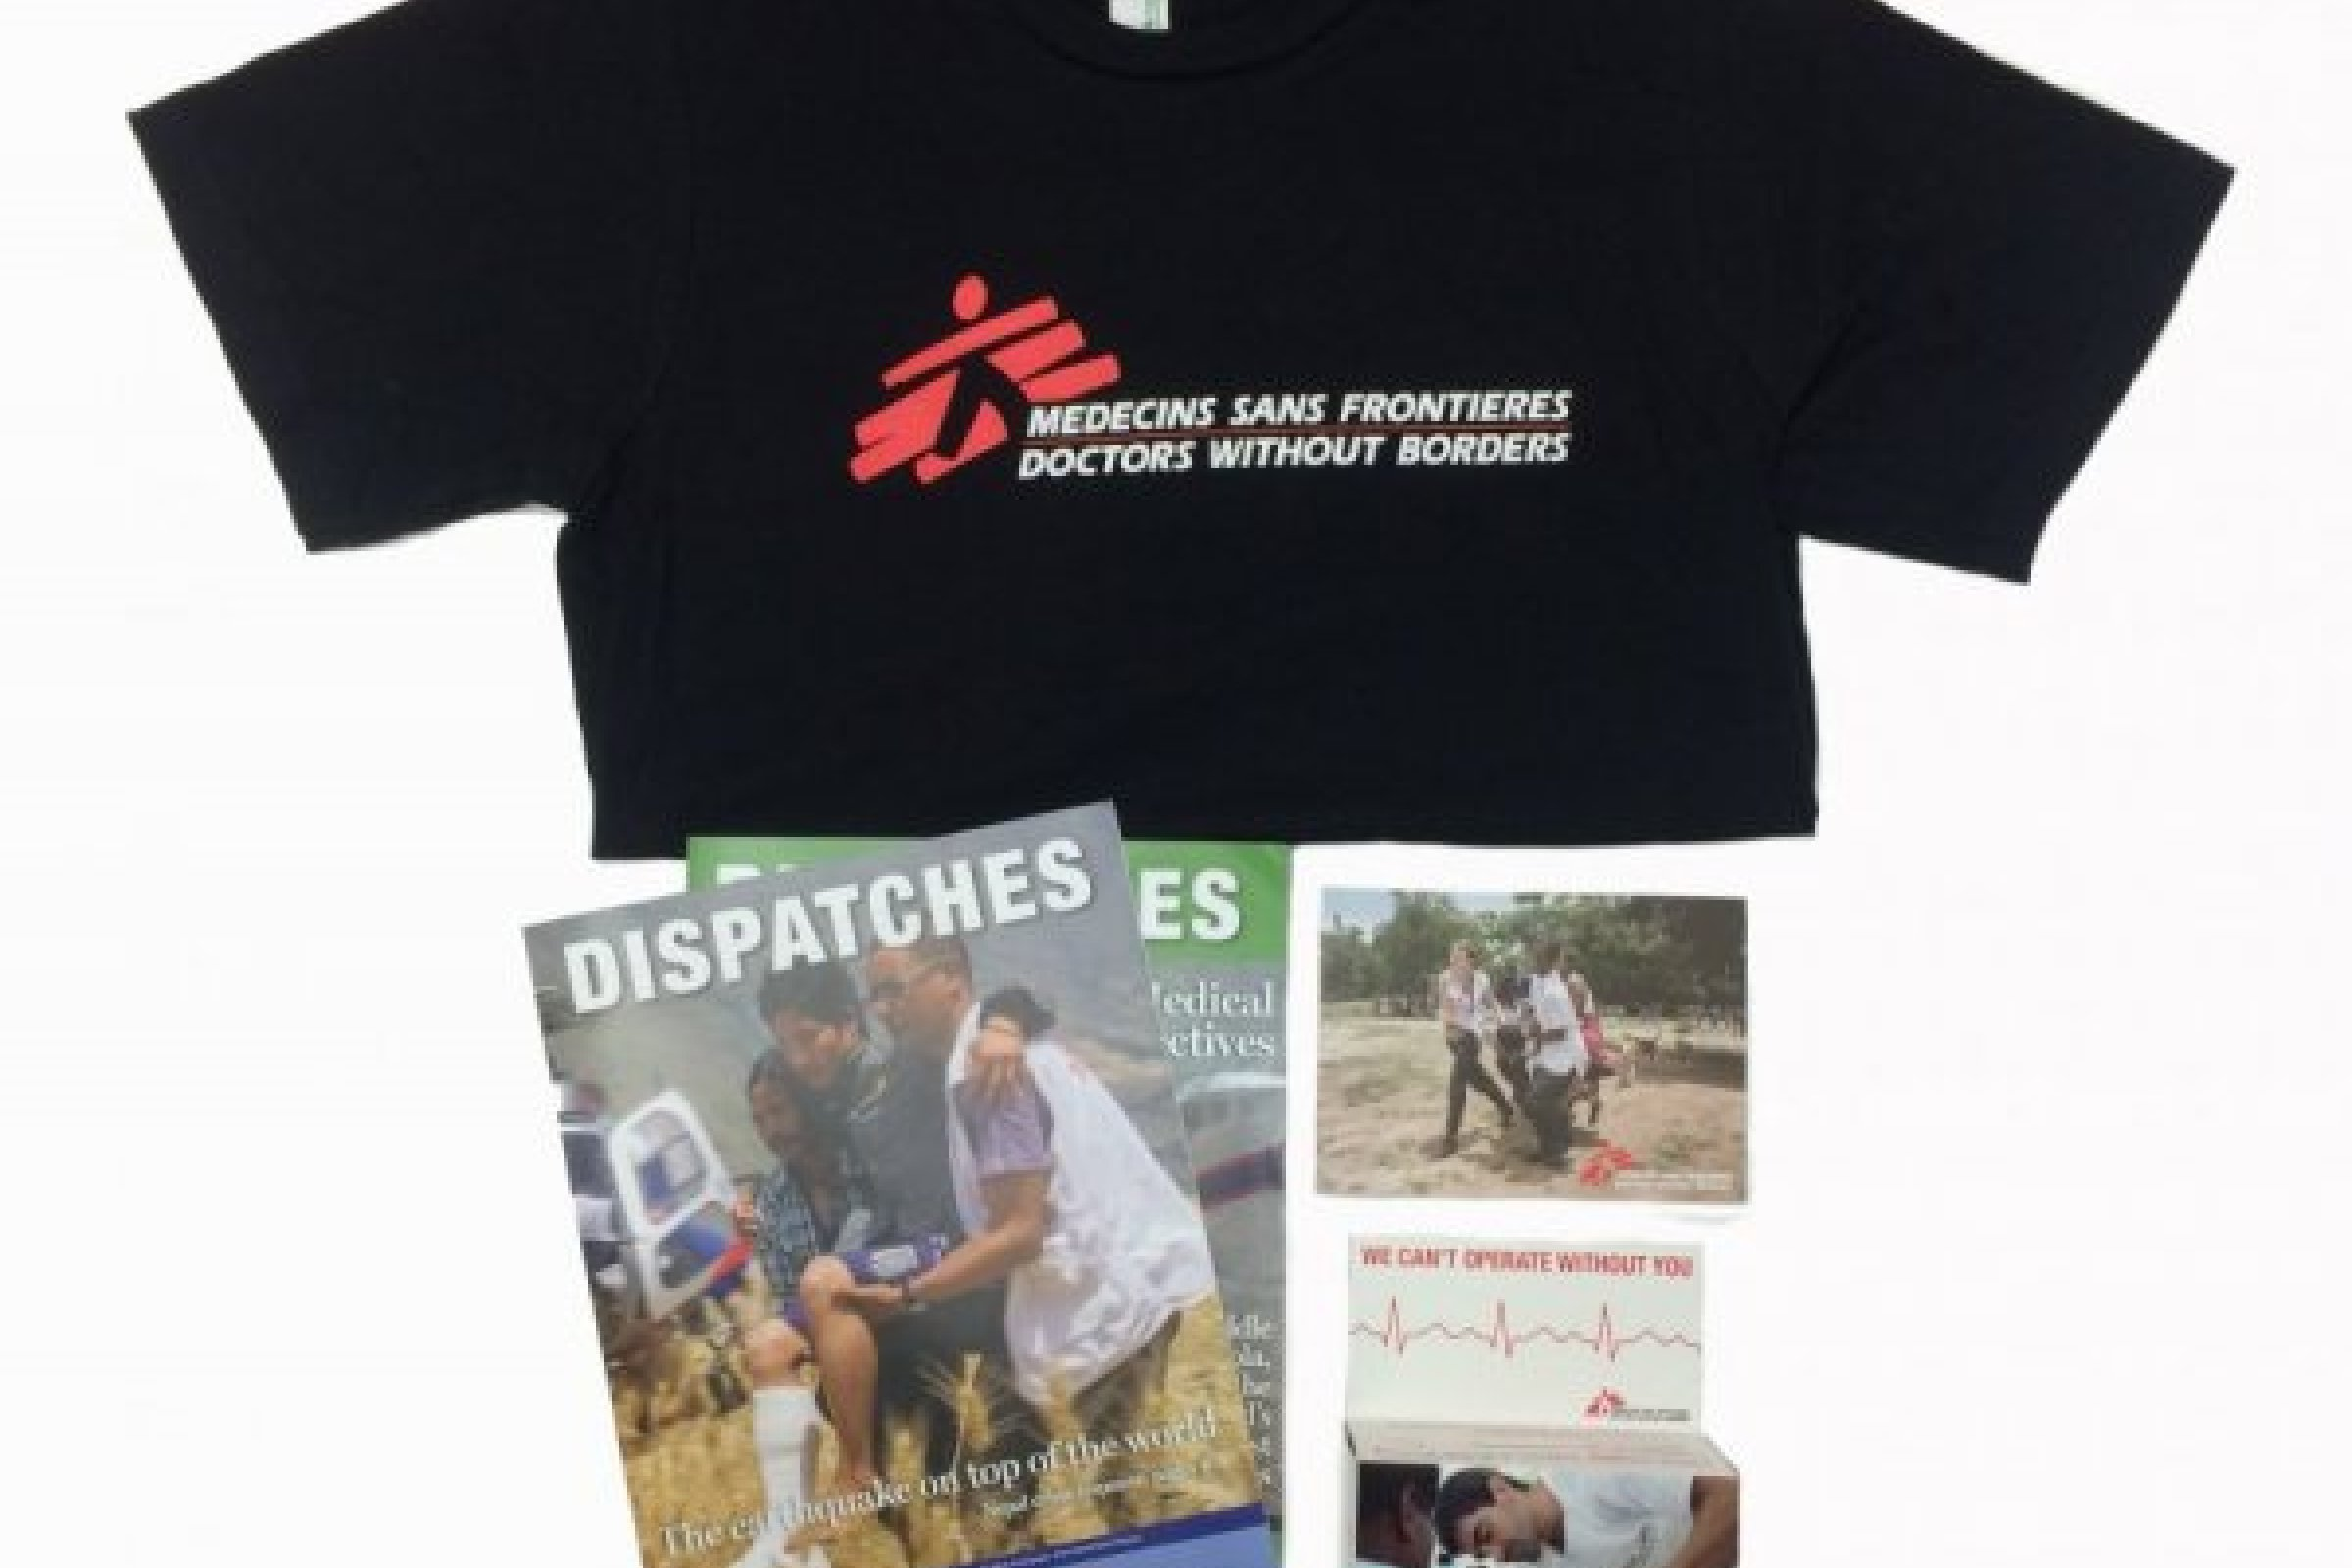 MSF merchandise available for university groups